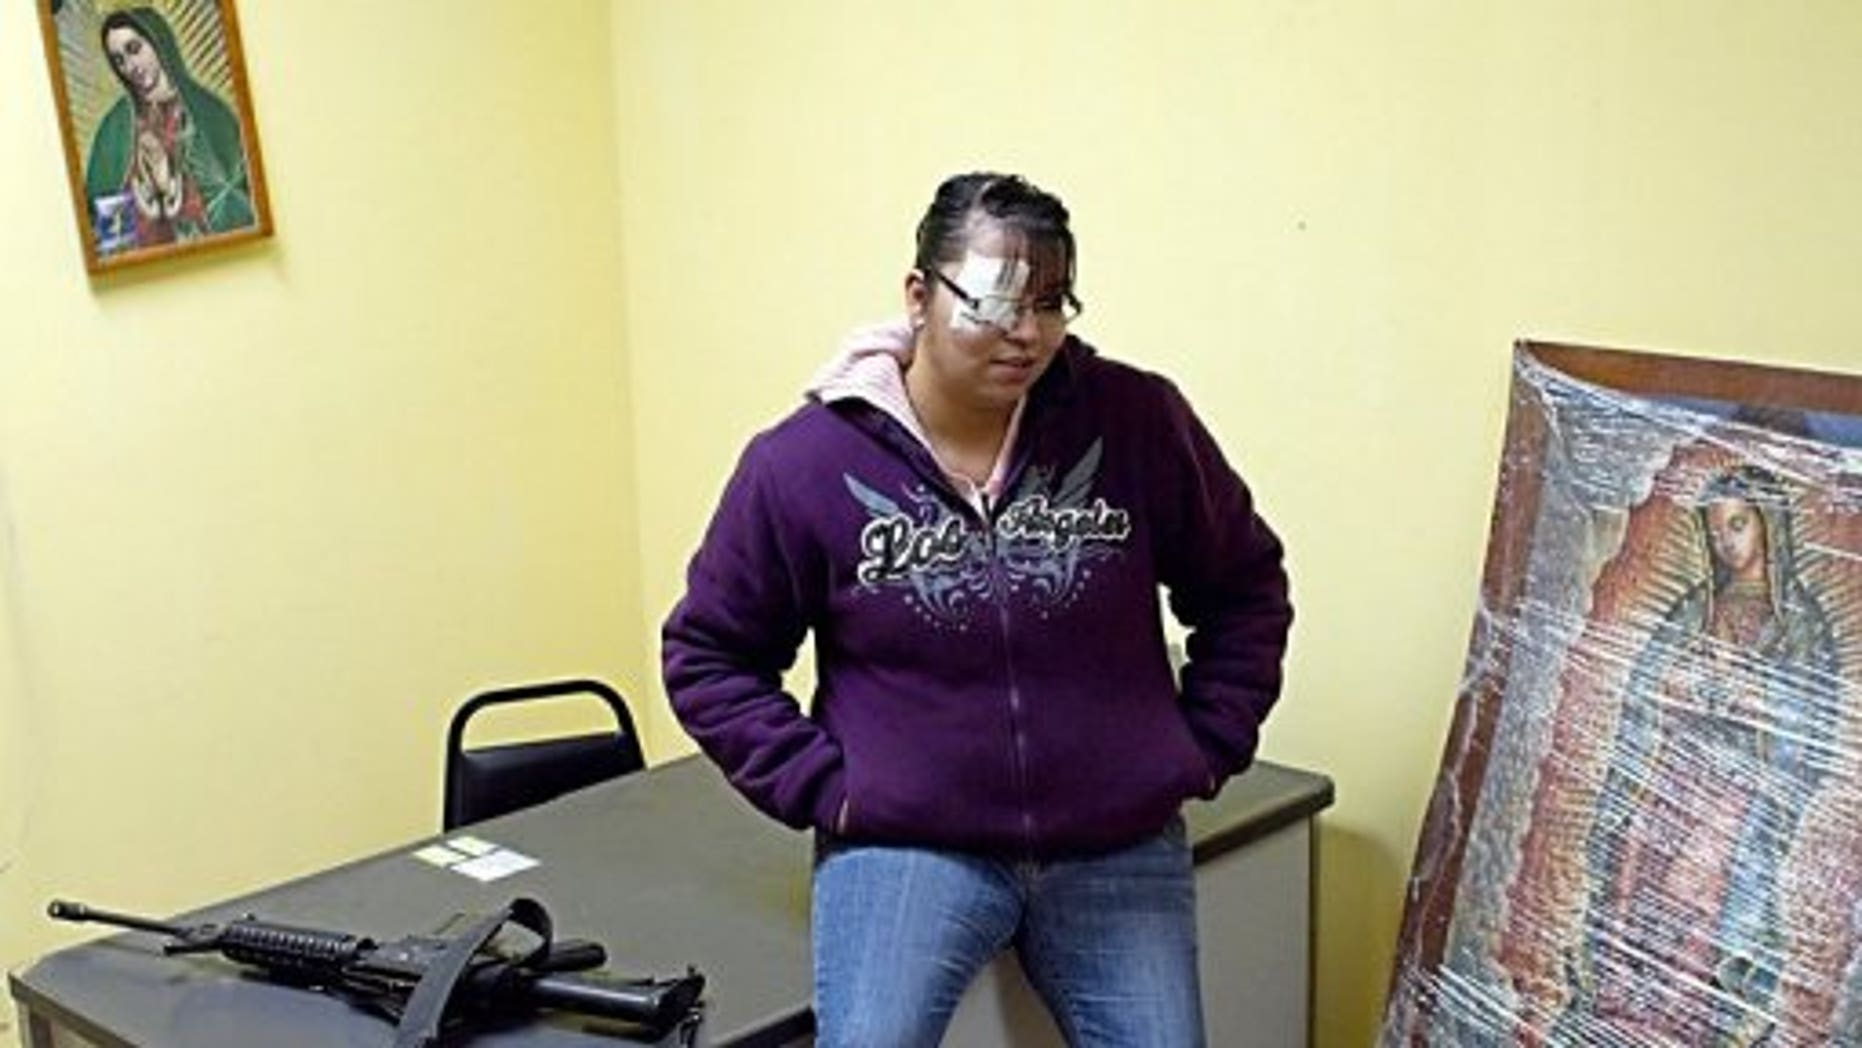 Erika Gandara is seen next to an AR-15 semi-automatic rifle at the police station in Guadalupe.